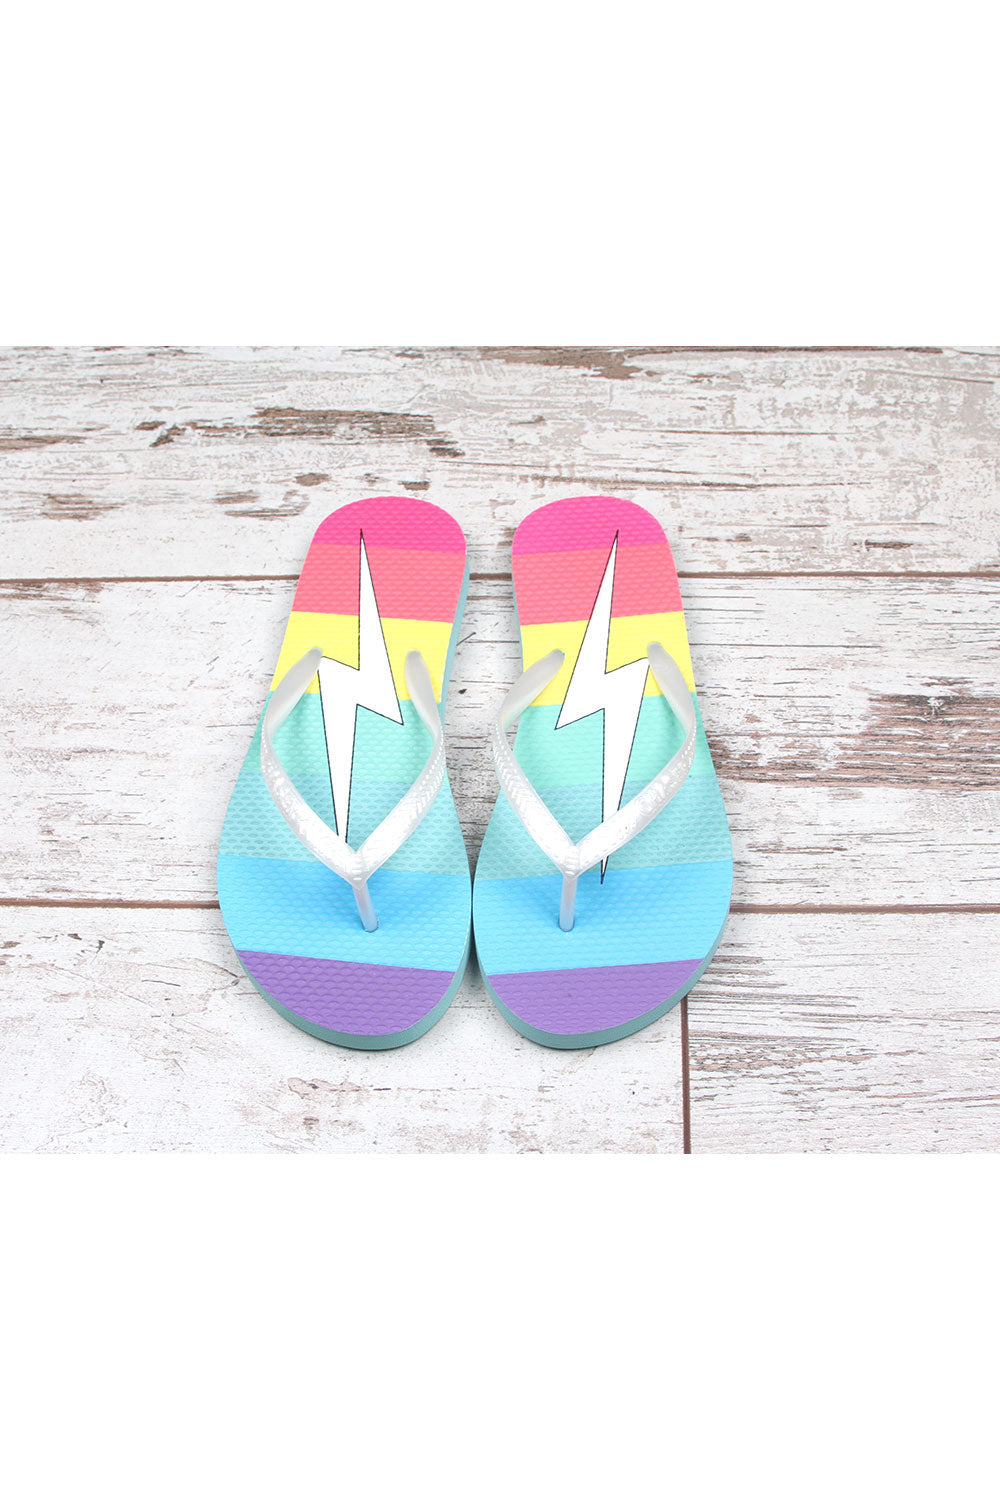 Rainbow Bolt WOMENS chaserbrand4.myshopify.com